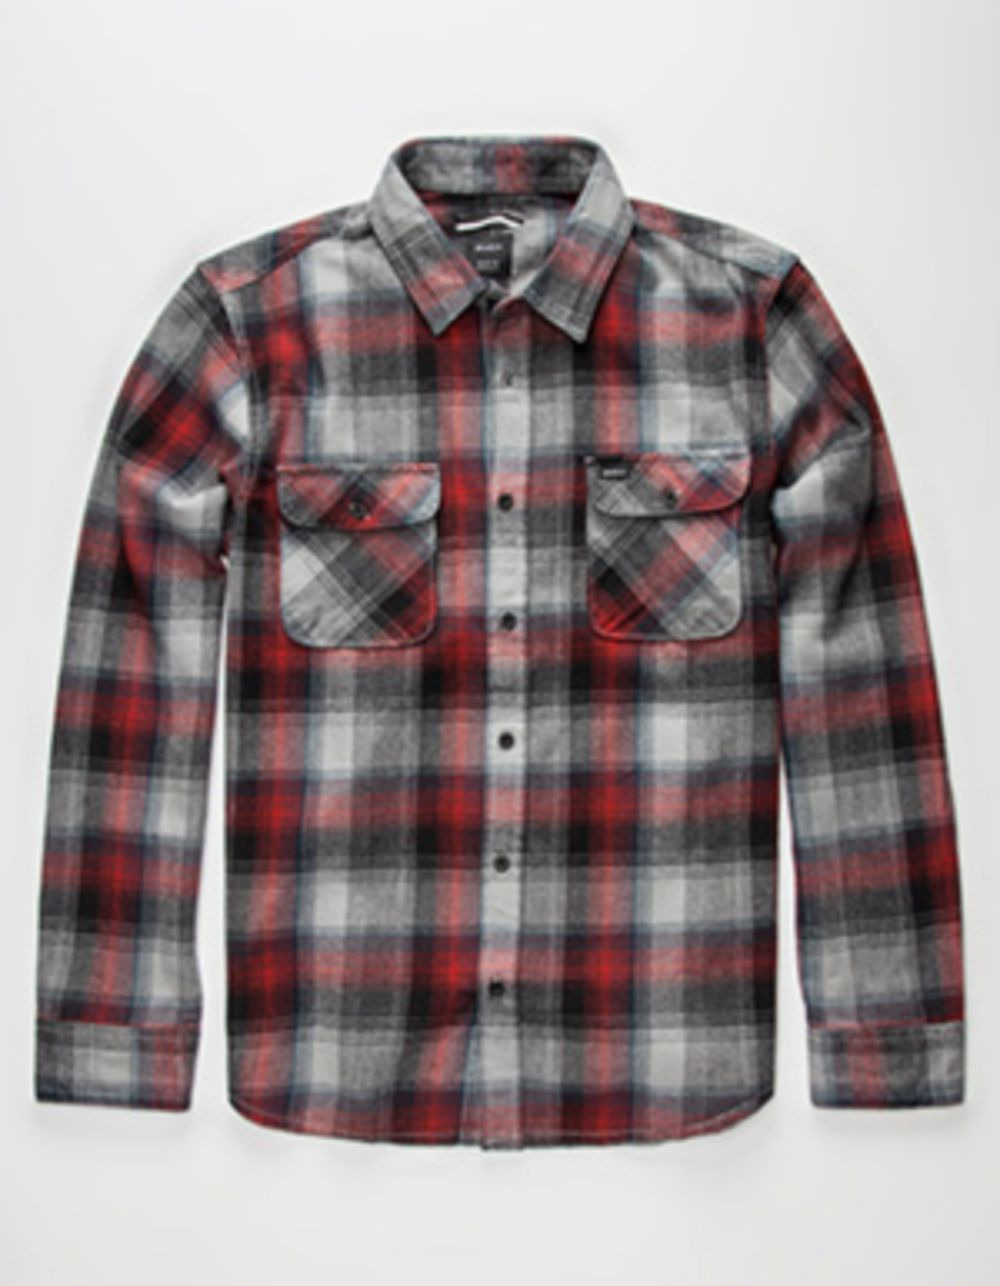 Flannel shirt ideas  Stunning  Fashionable Flannel For Men Style Ideas from